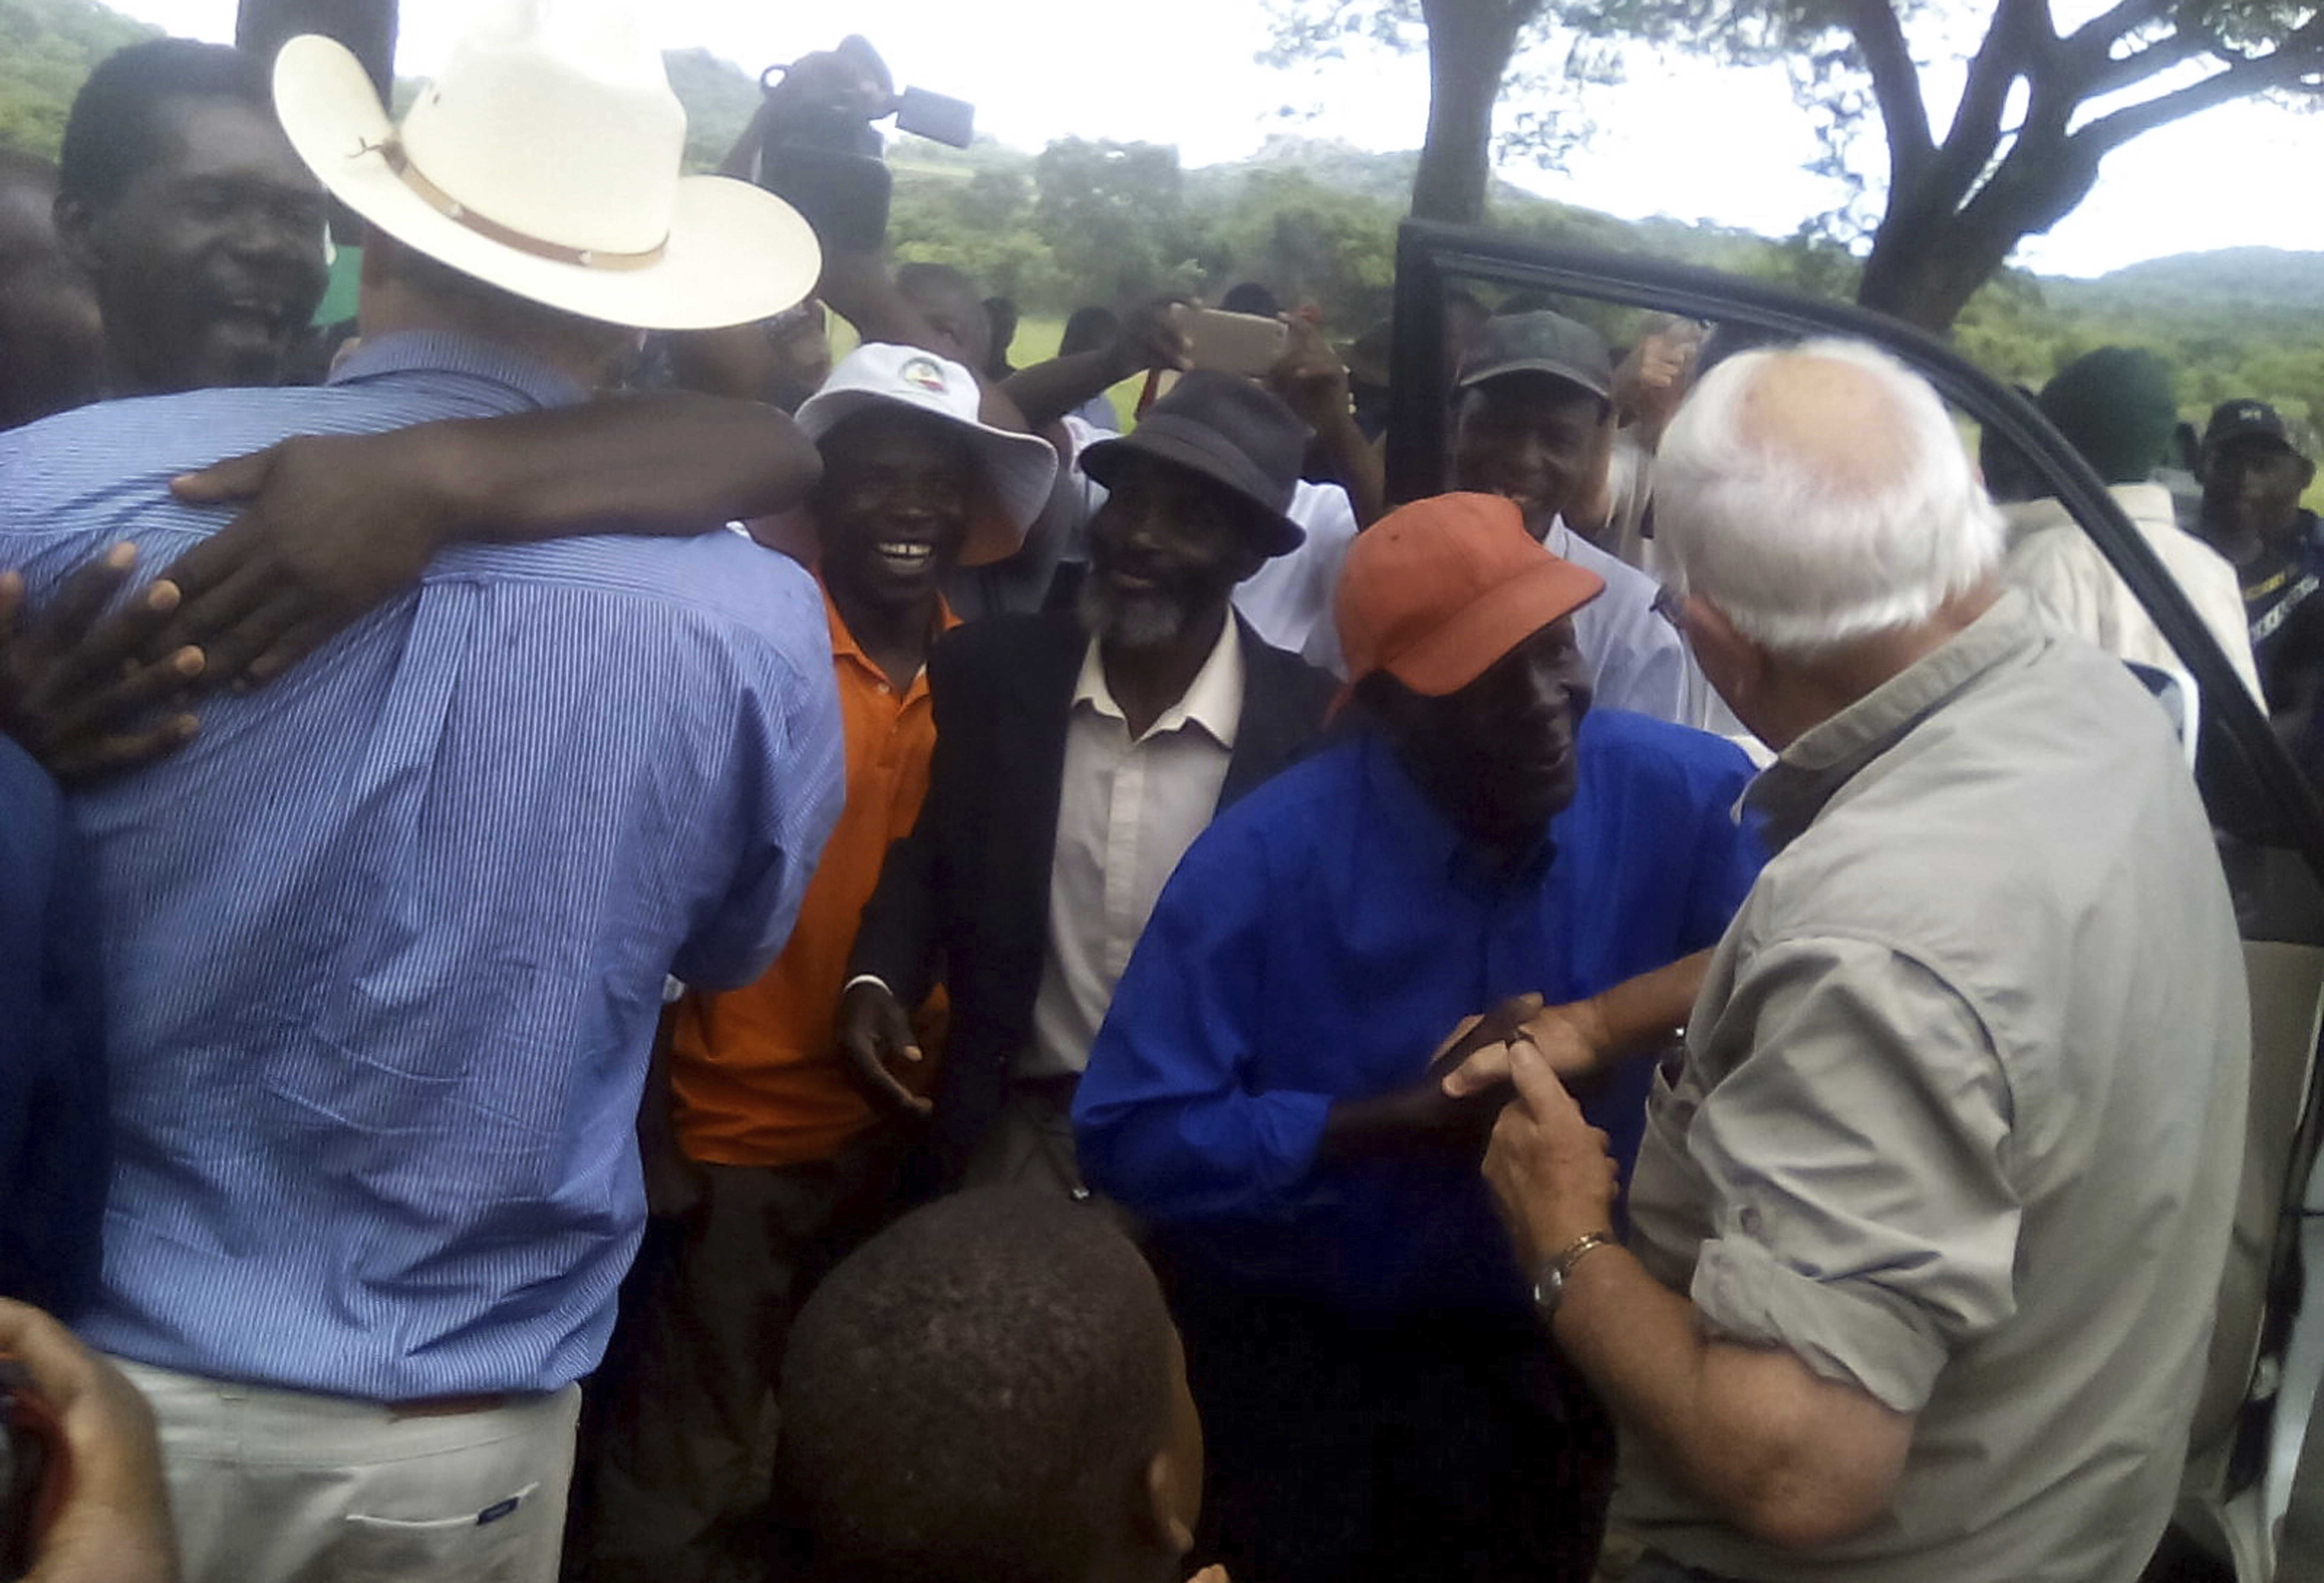 Farmers Robert Smart, right, and his son, Darryn, are welcomed back to their farm, Lesbury, by workers and community members, Dec. 21, 2017 in Tandi, Zimbabwe.